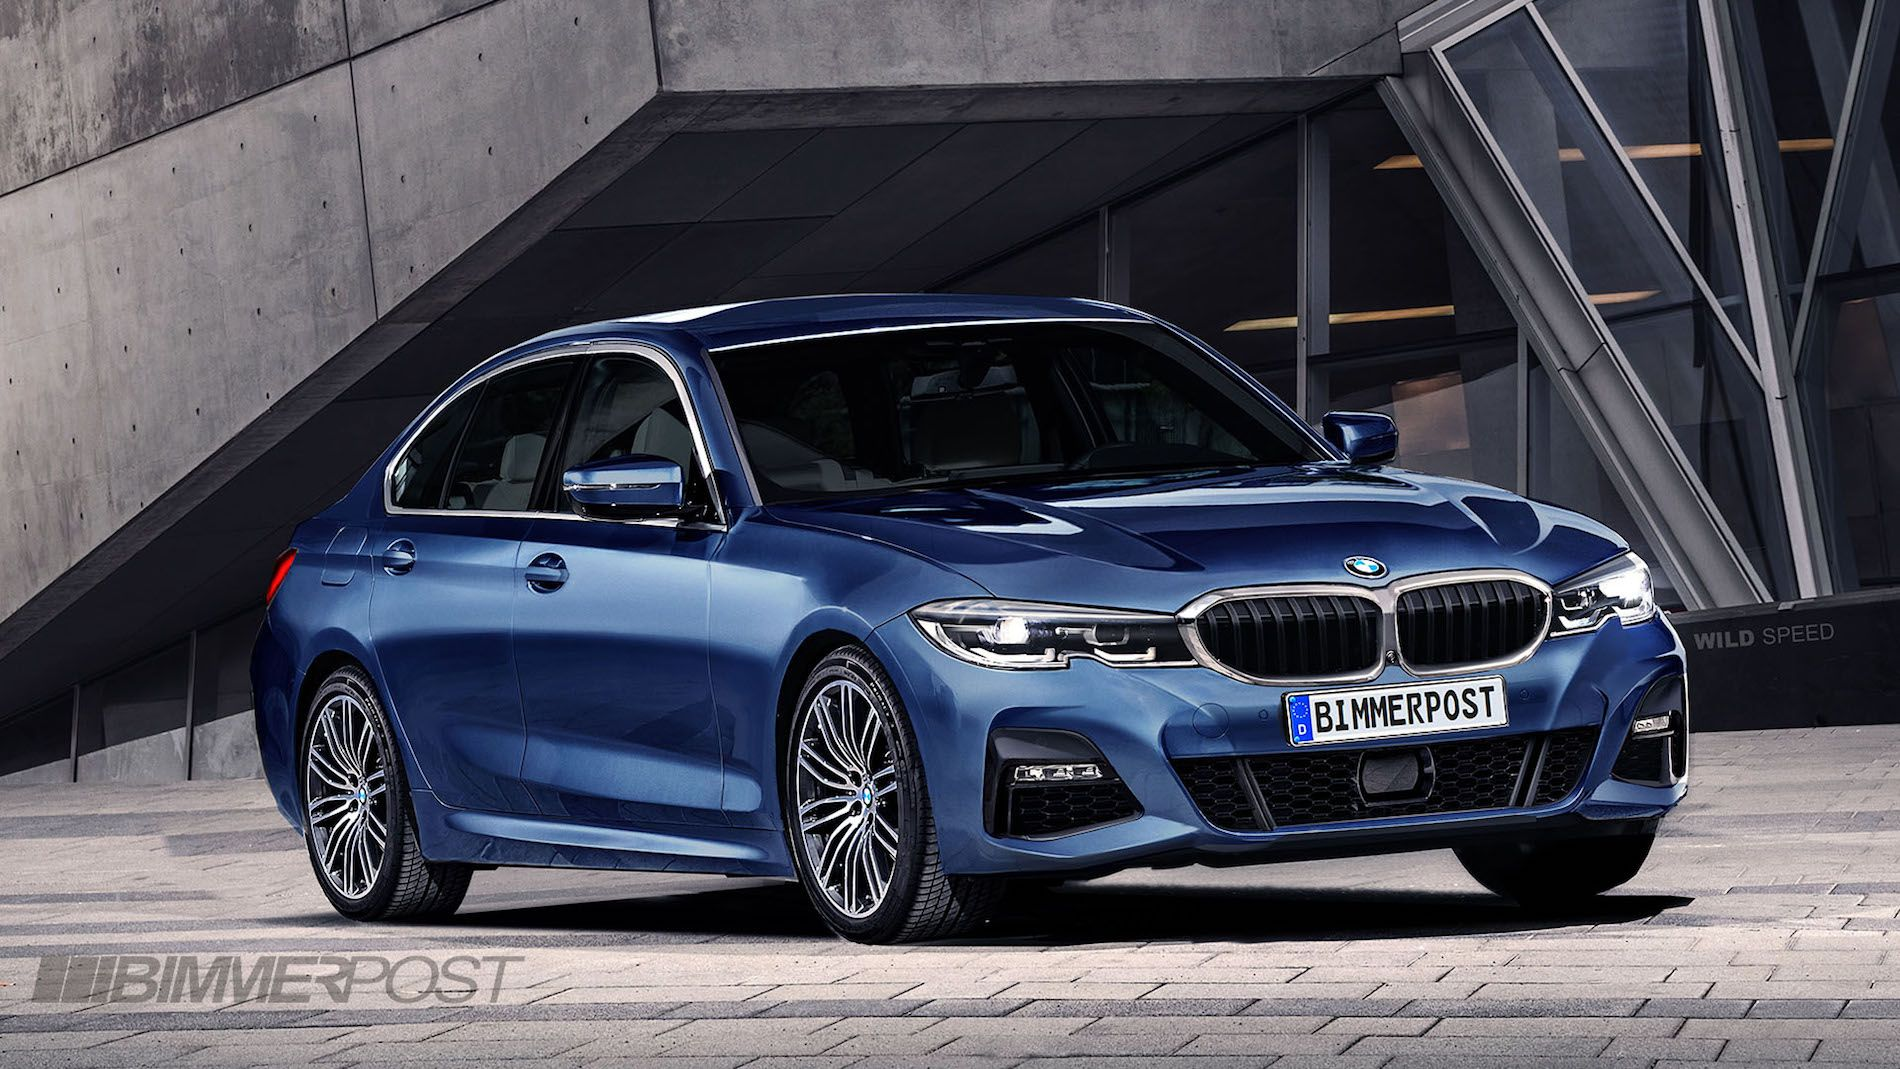 G20 Bmw 3 Series Rendered After Latest Spy Shots Bmw 3 Series Bmw Bmw 3 Series Sedan